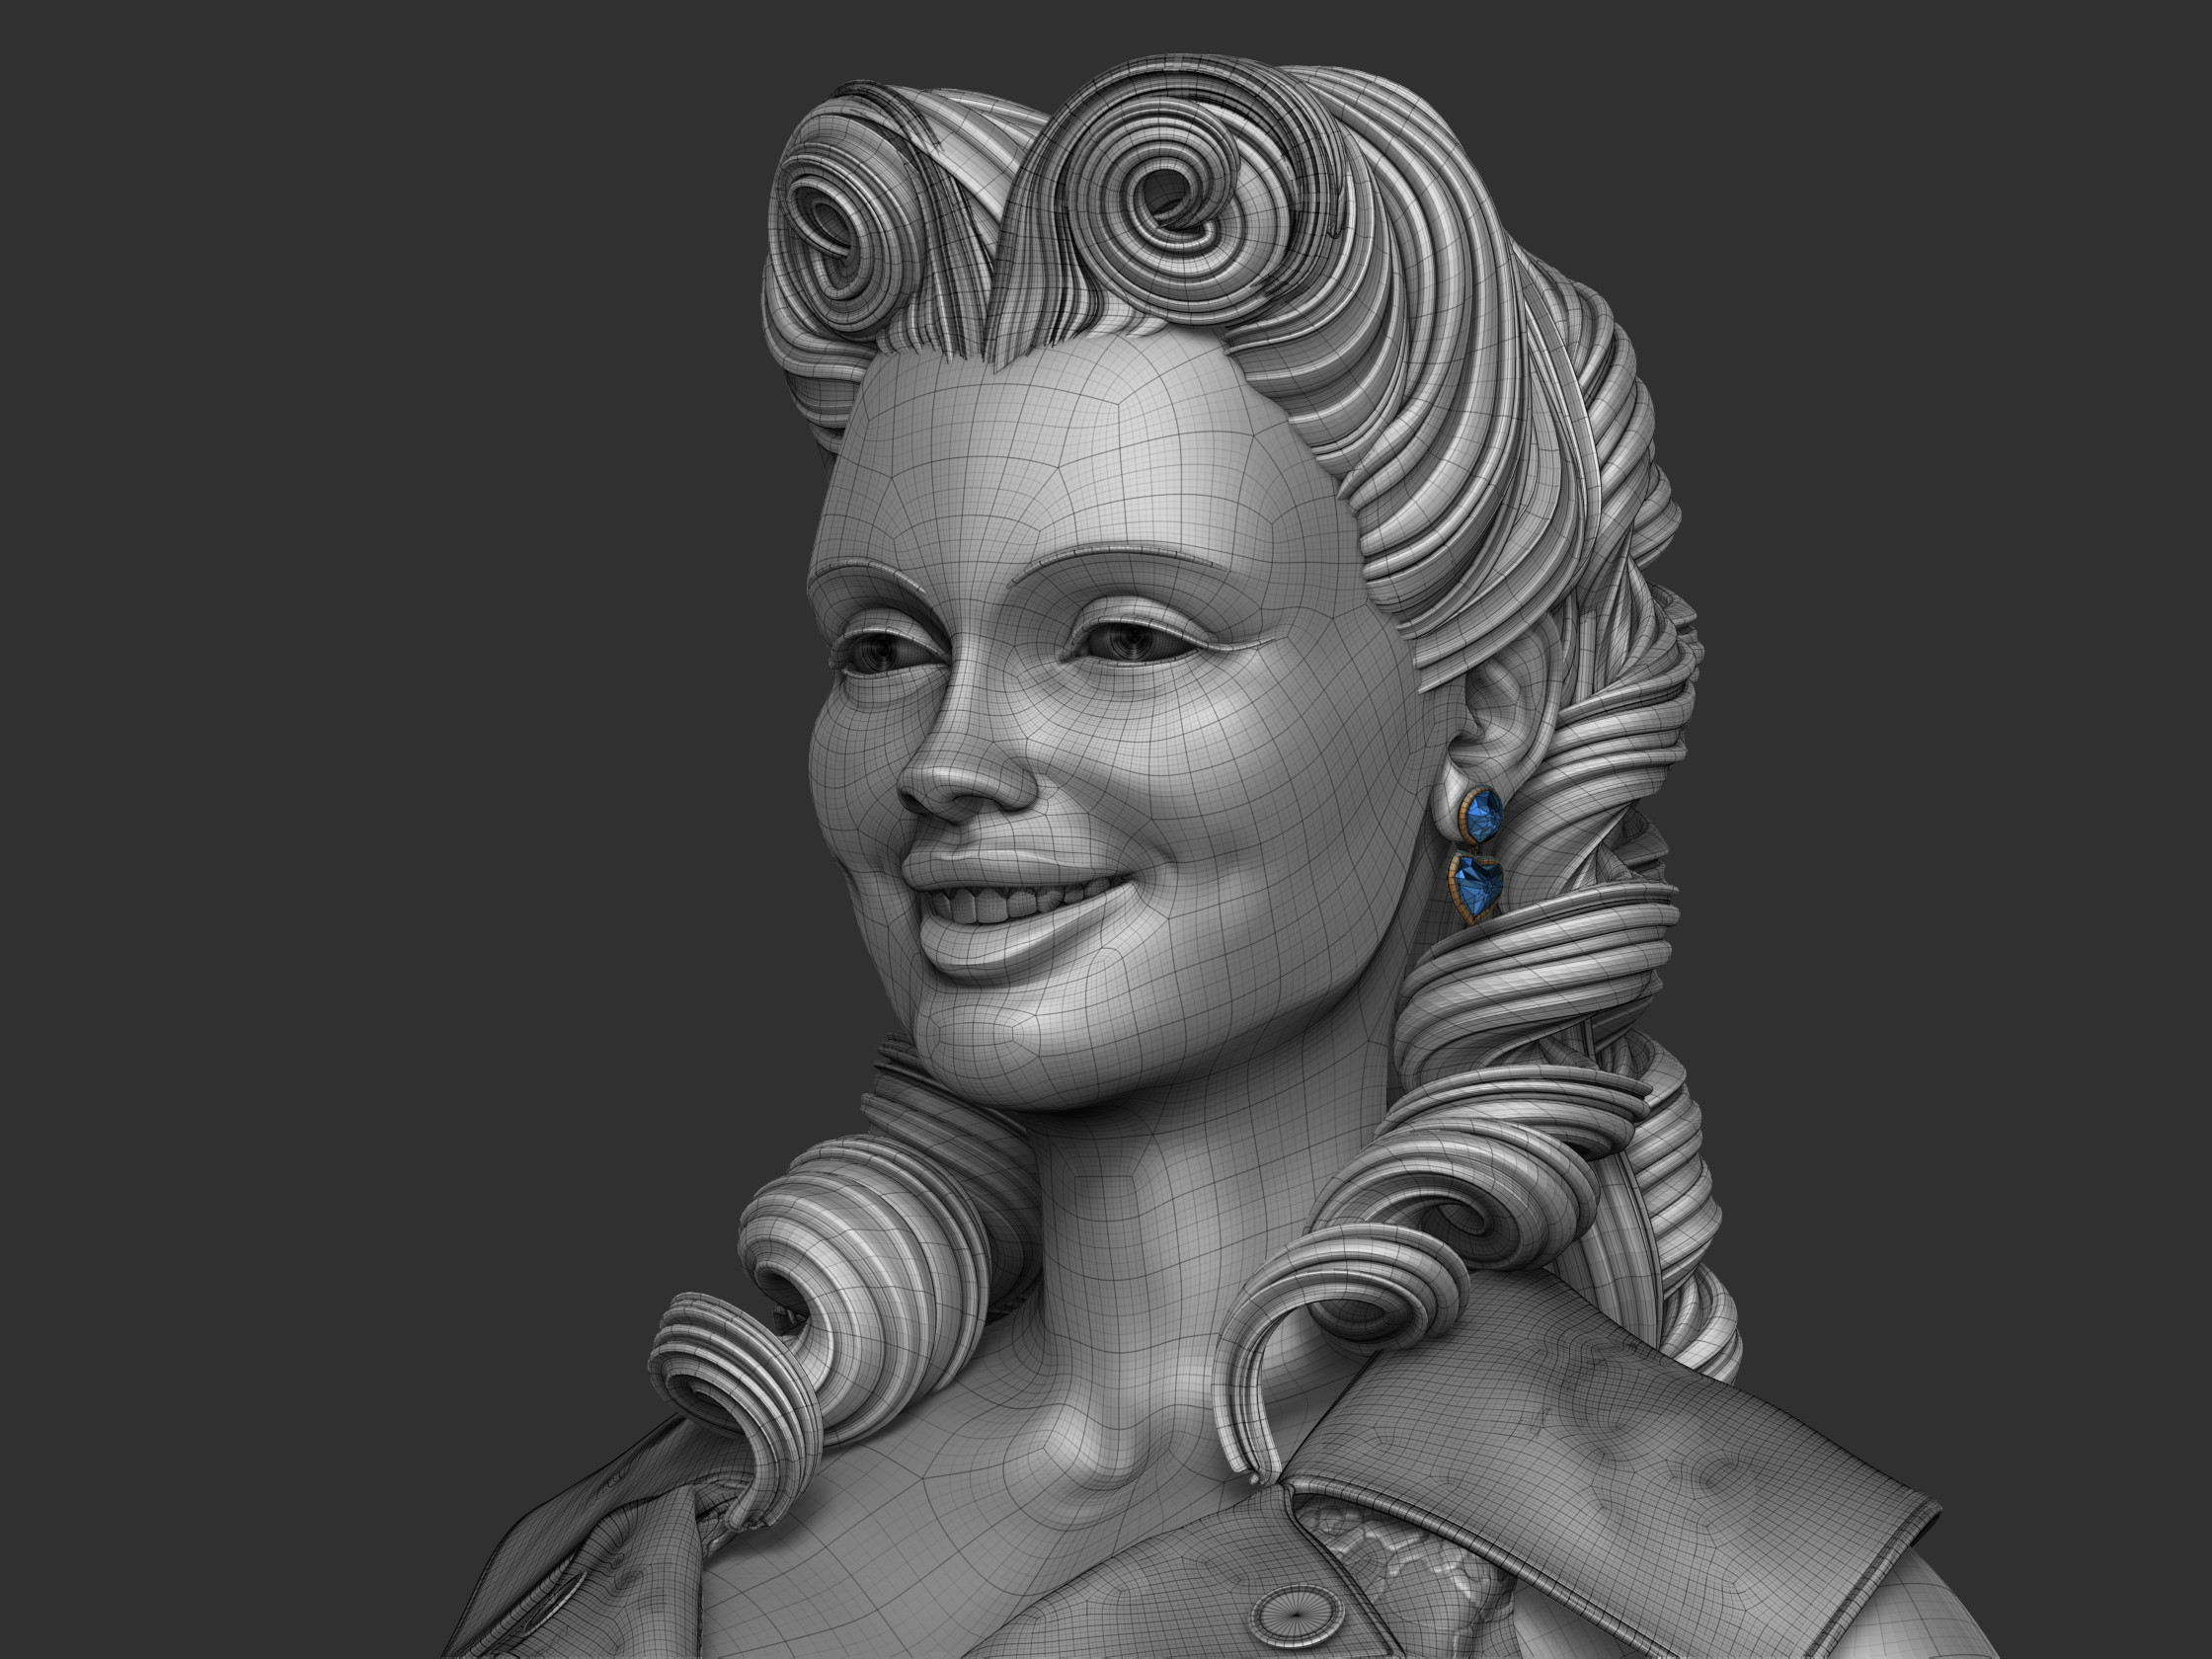 Layers on Zbrush were used to do the smiling or serious pose.